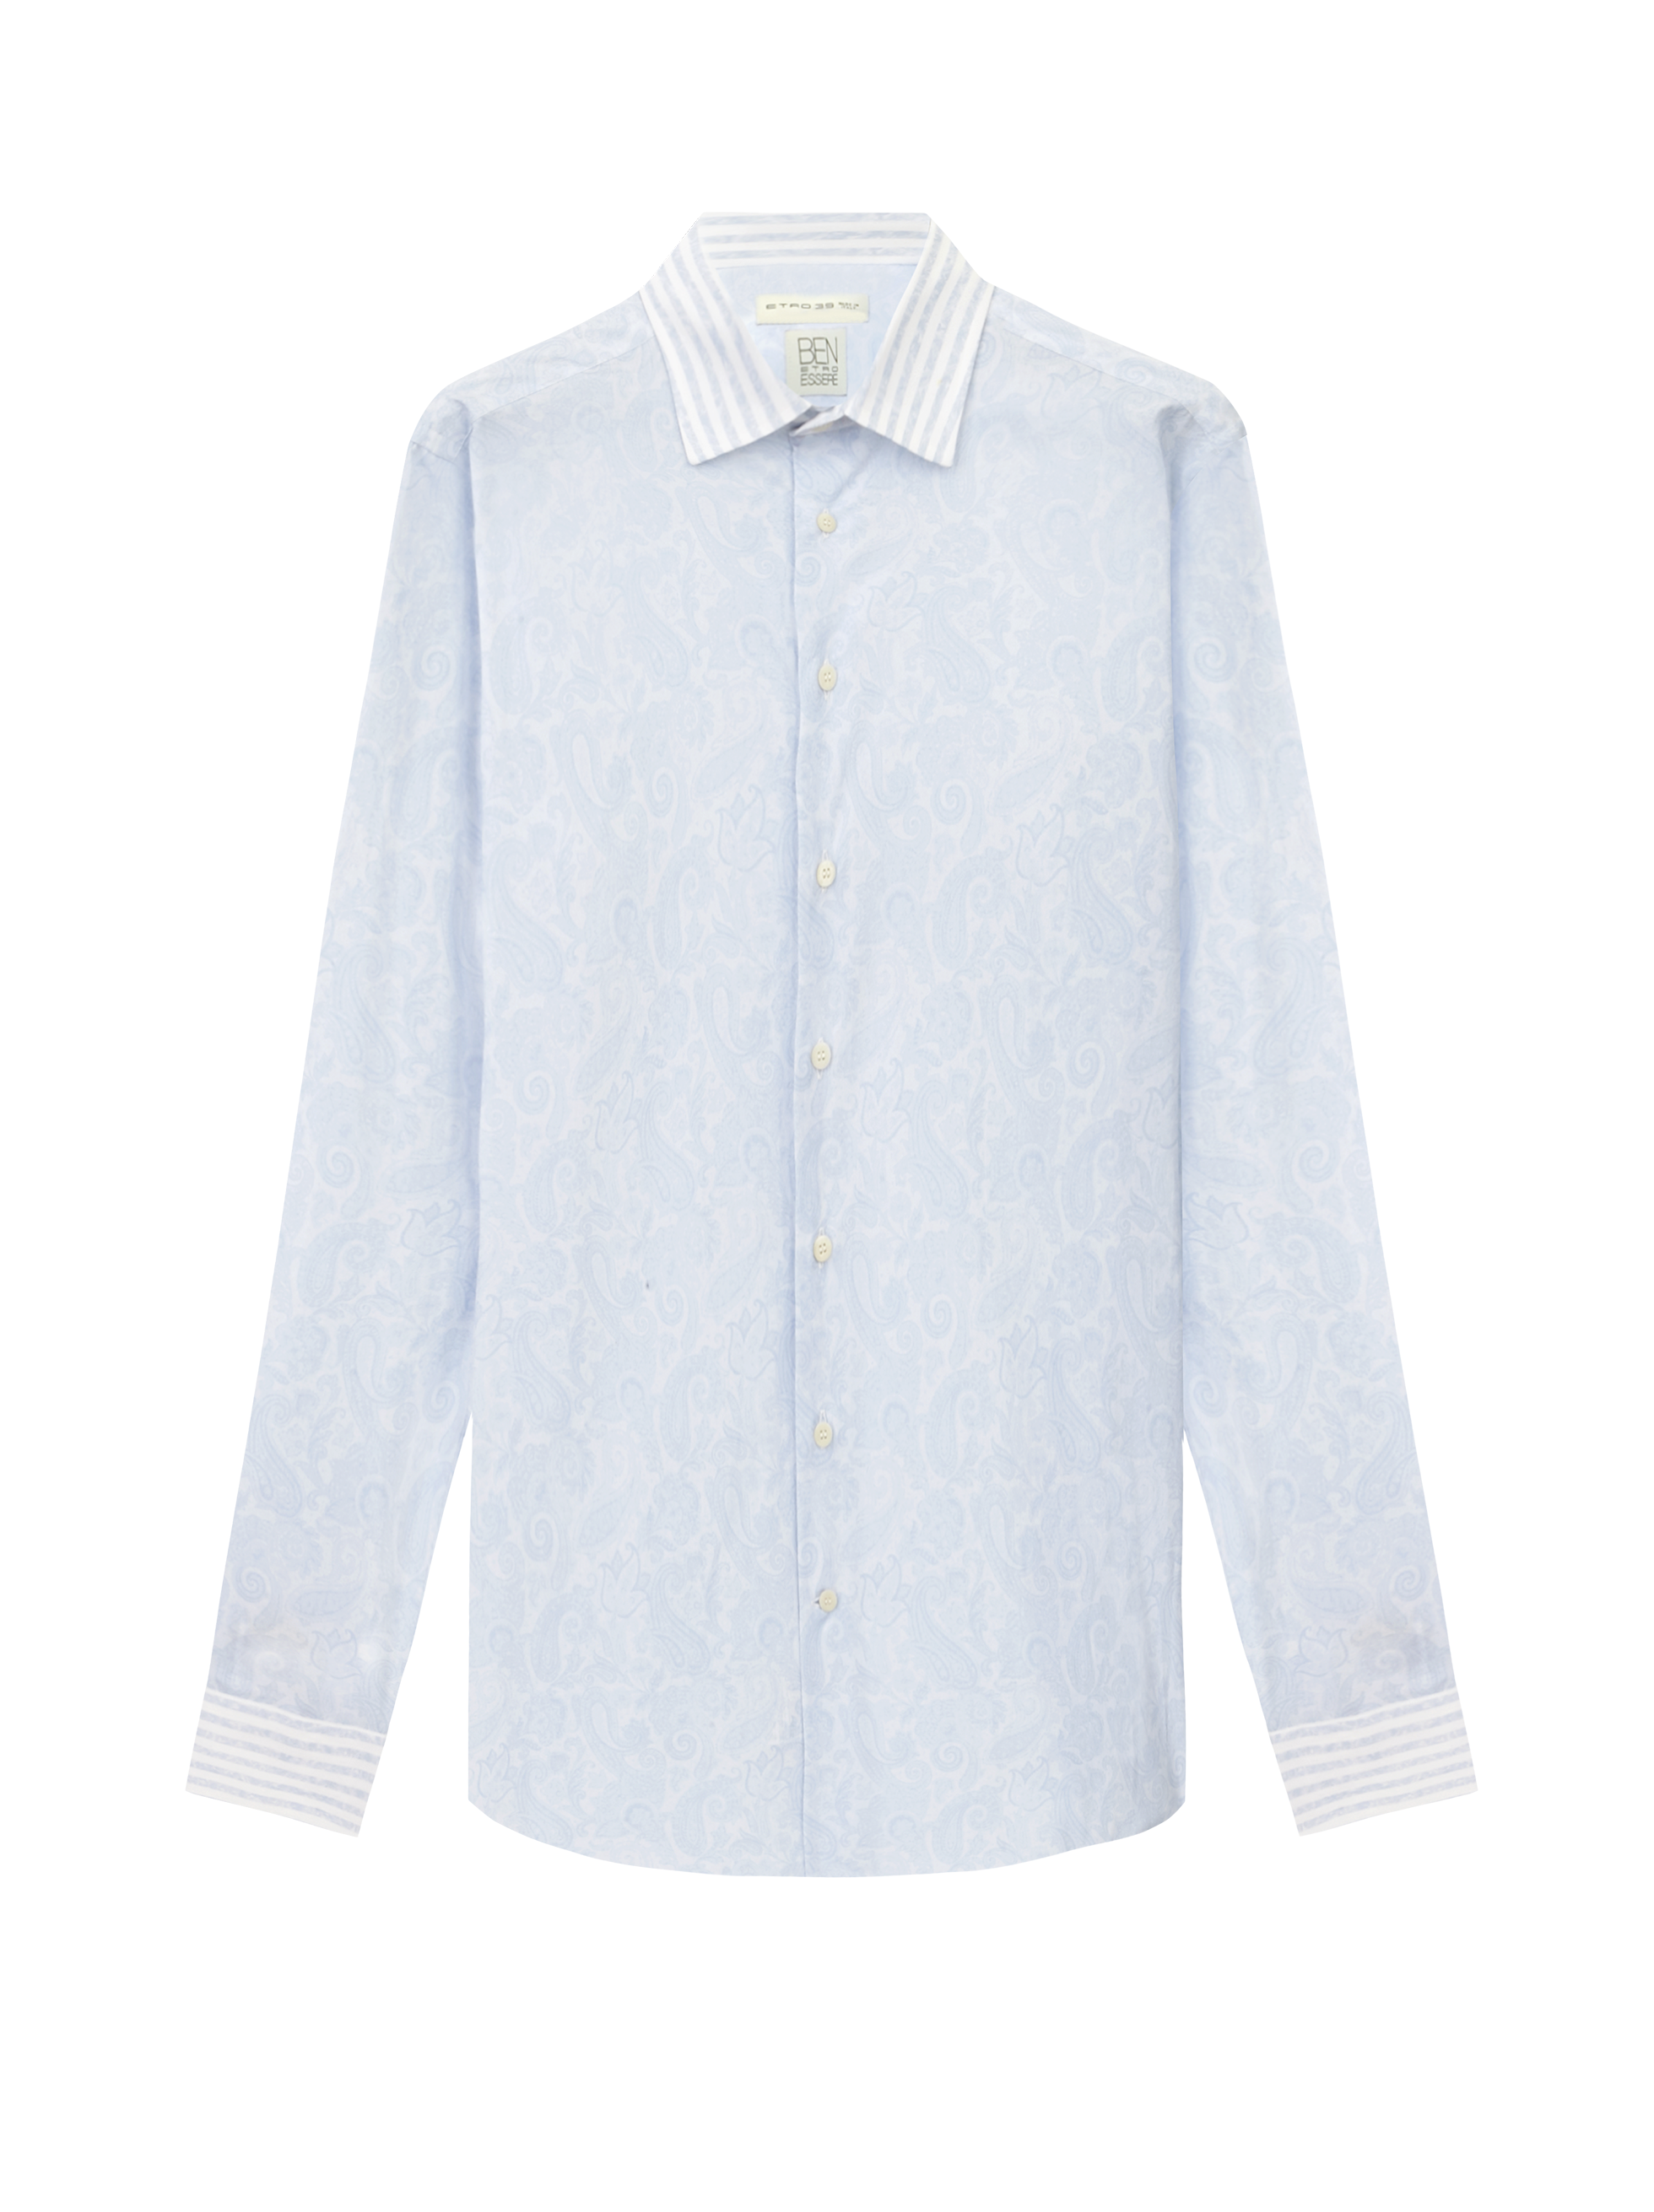 BENETROESSERE ORGANIC COTTON DUAL FABRIC SHIRT